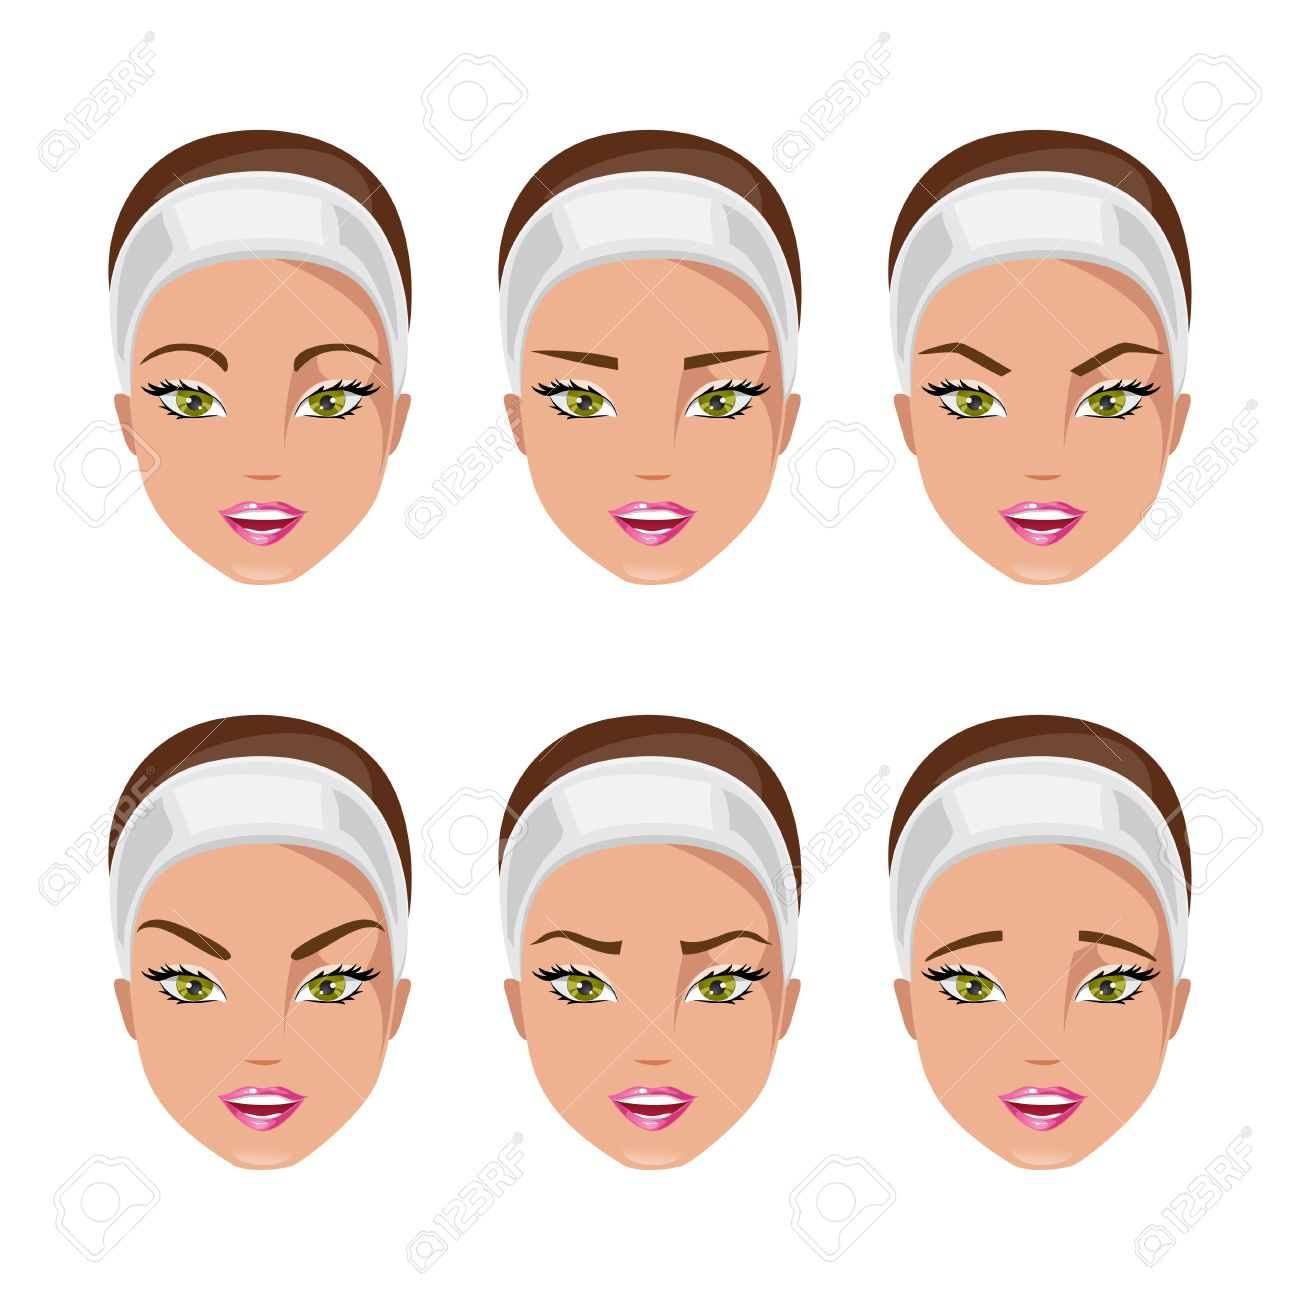 Set Of Women With Different Types Of Eyebrows Royalty Fri Clipart